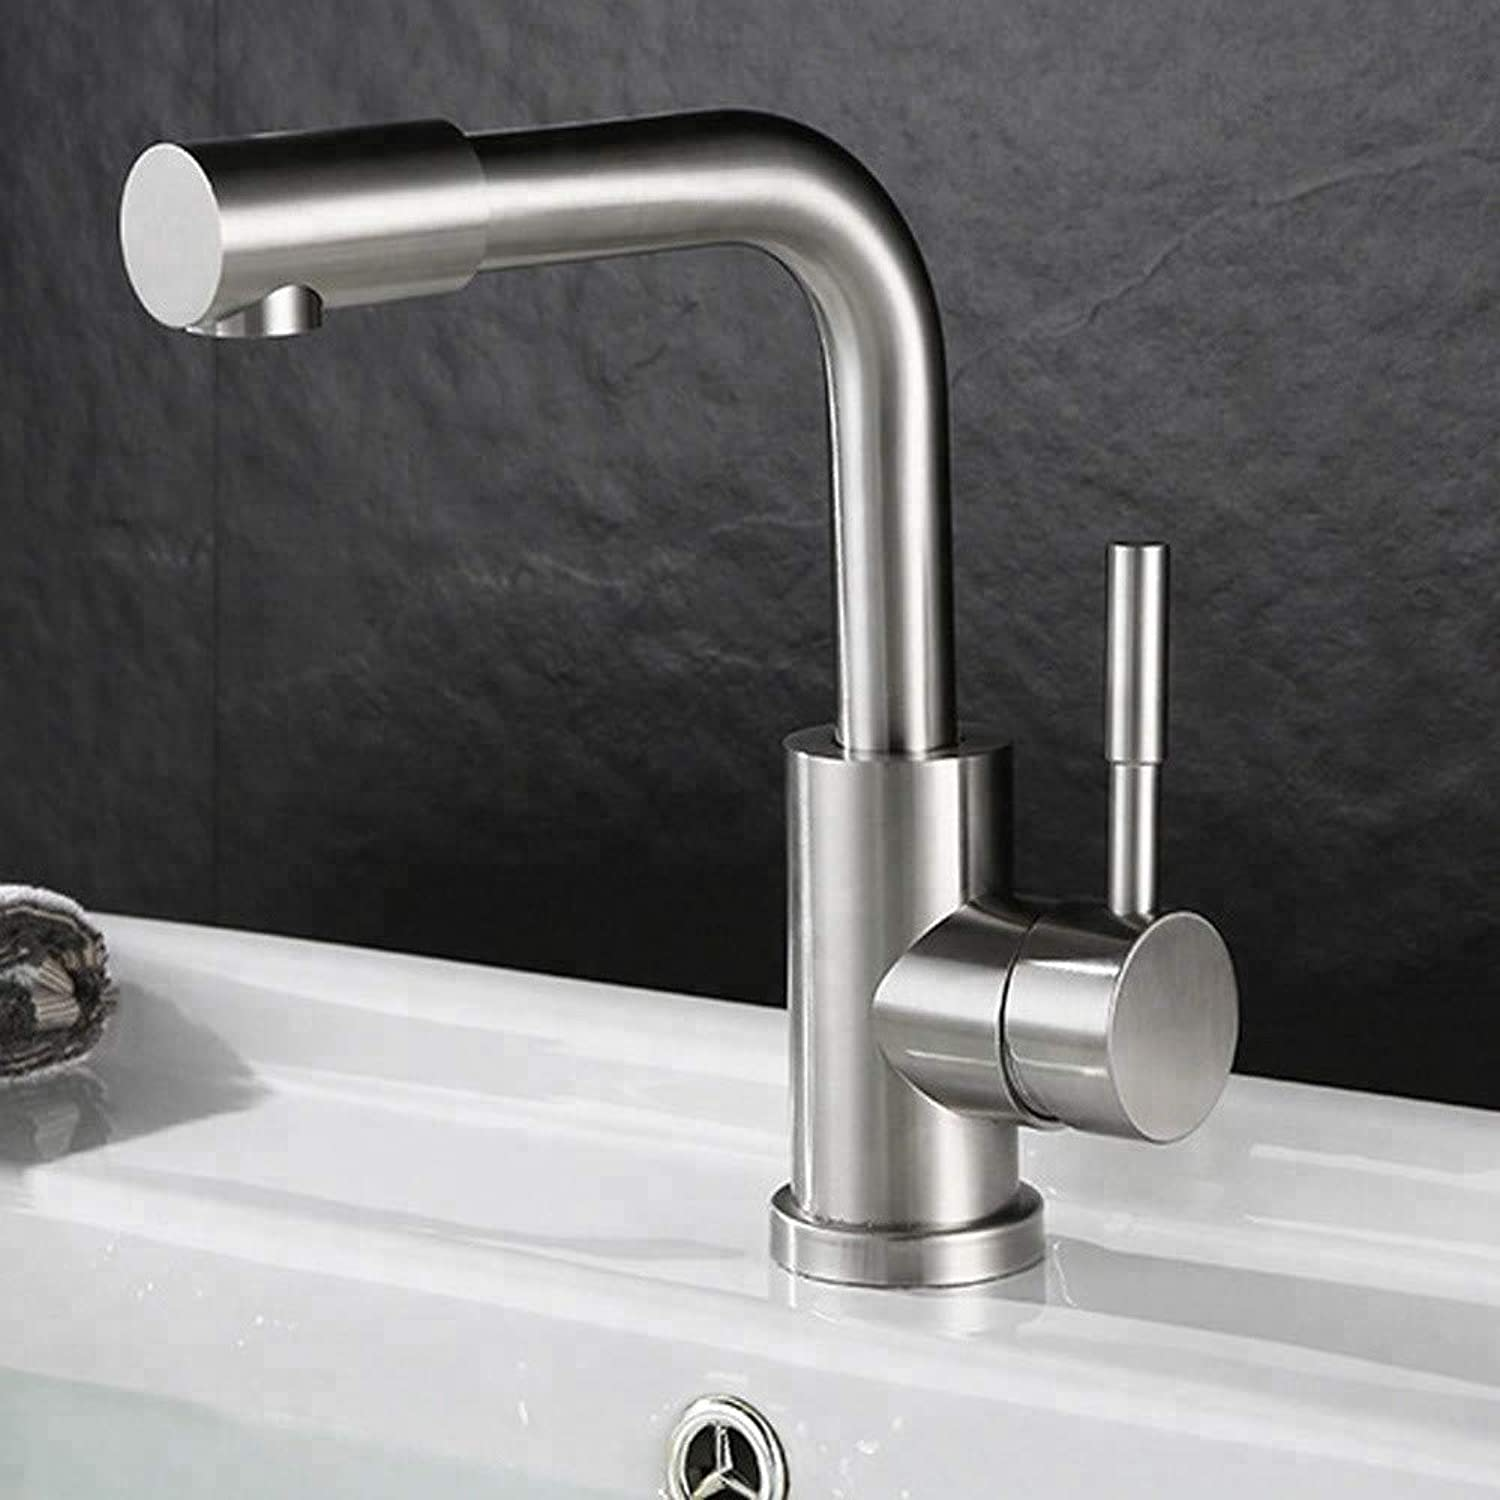 Bathroom Sink Tap Modern Style Single Handle 304 Steel Basin Faucet with Swivel Spout Bathroom Faucet